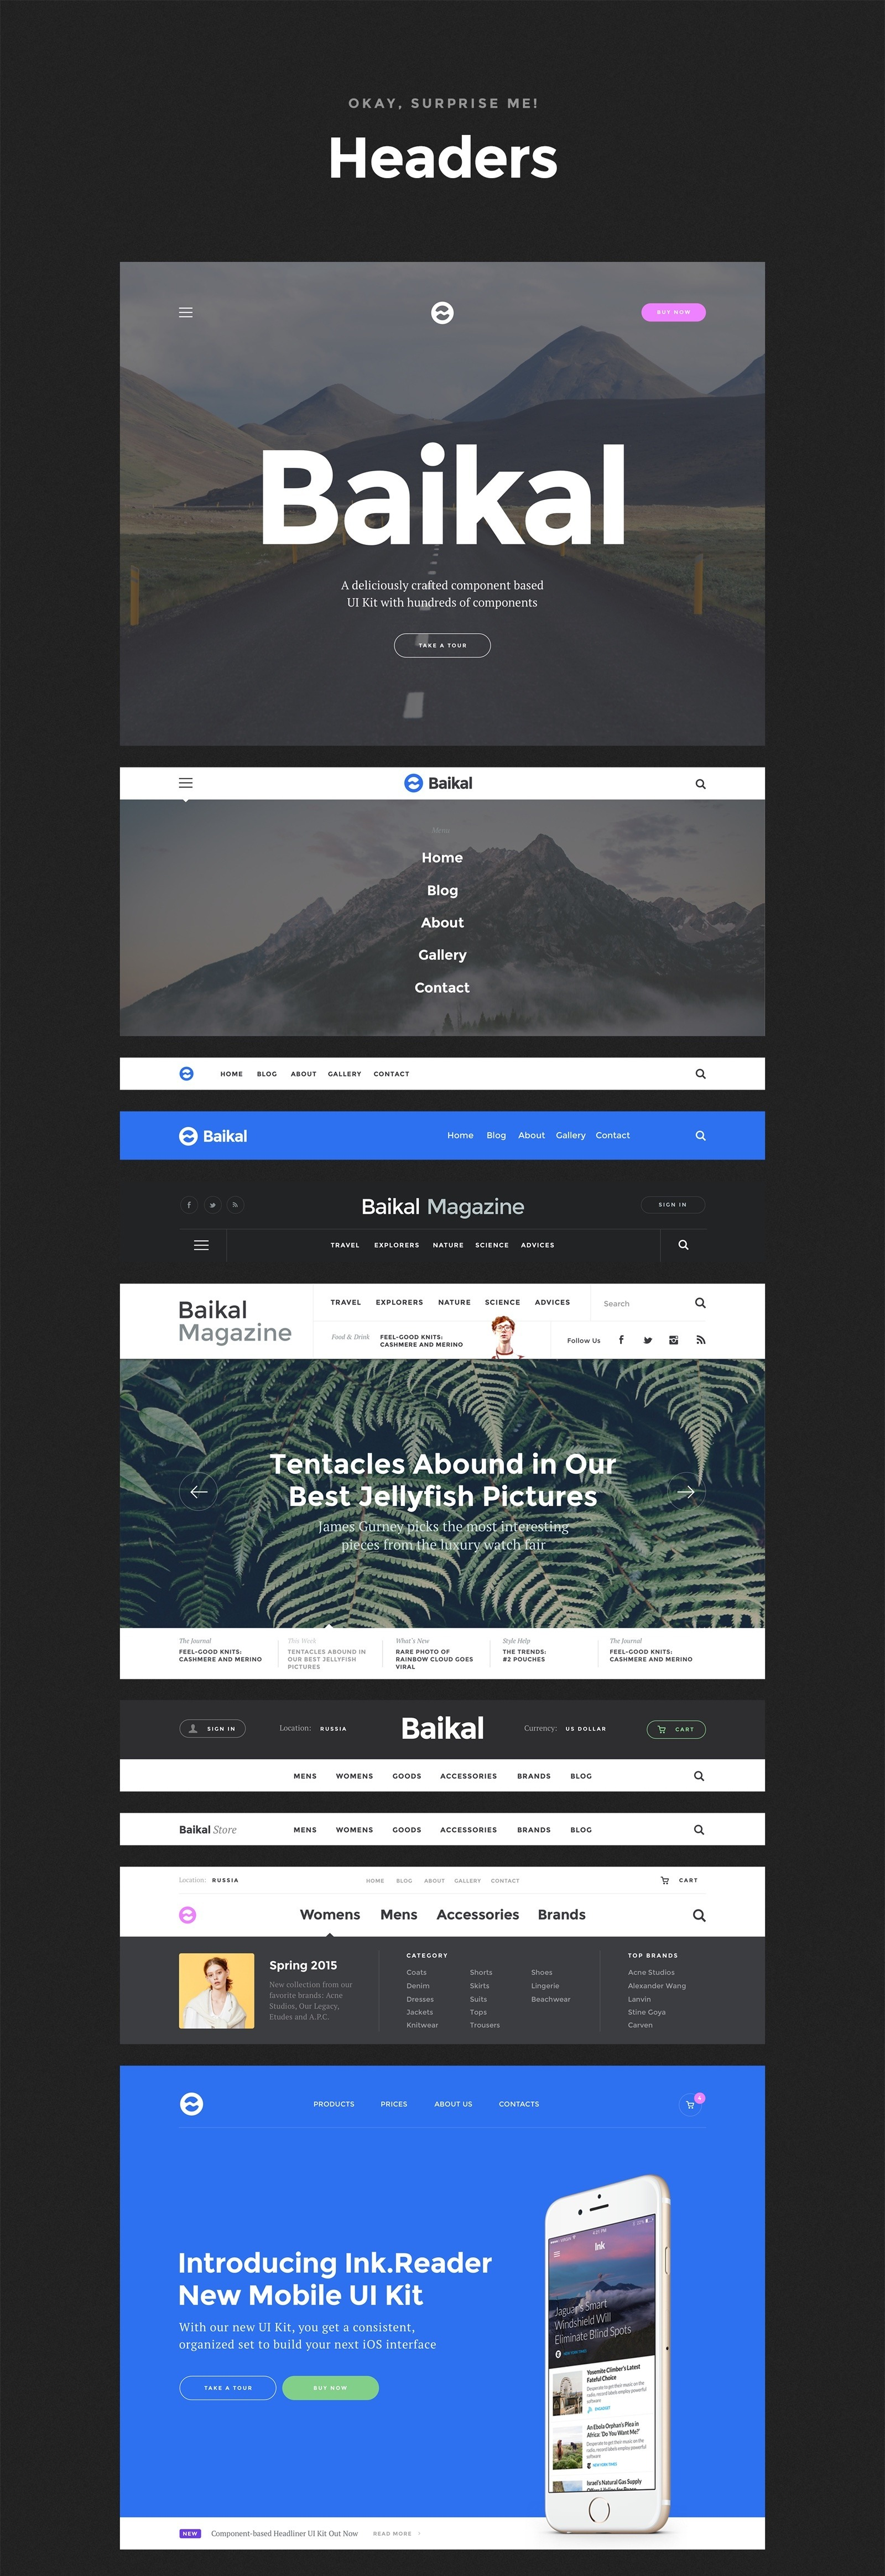 8 Headers - Baikal UI Kit - Huge Set Of UI Components